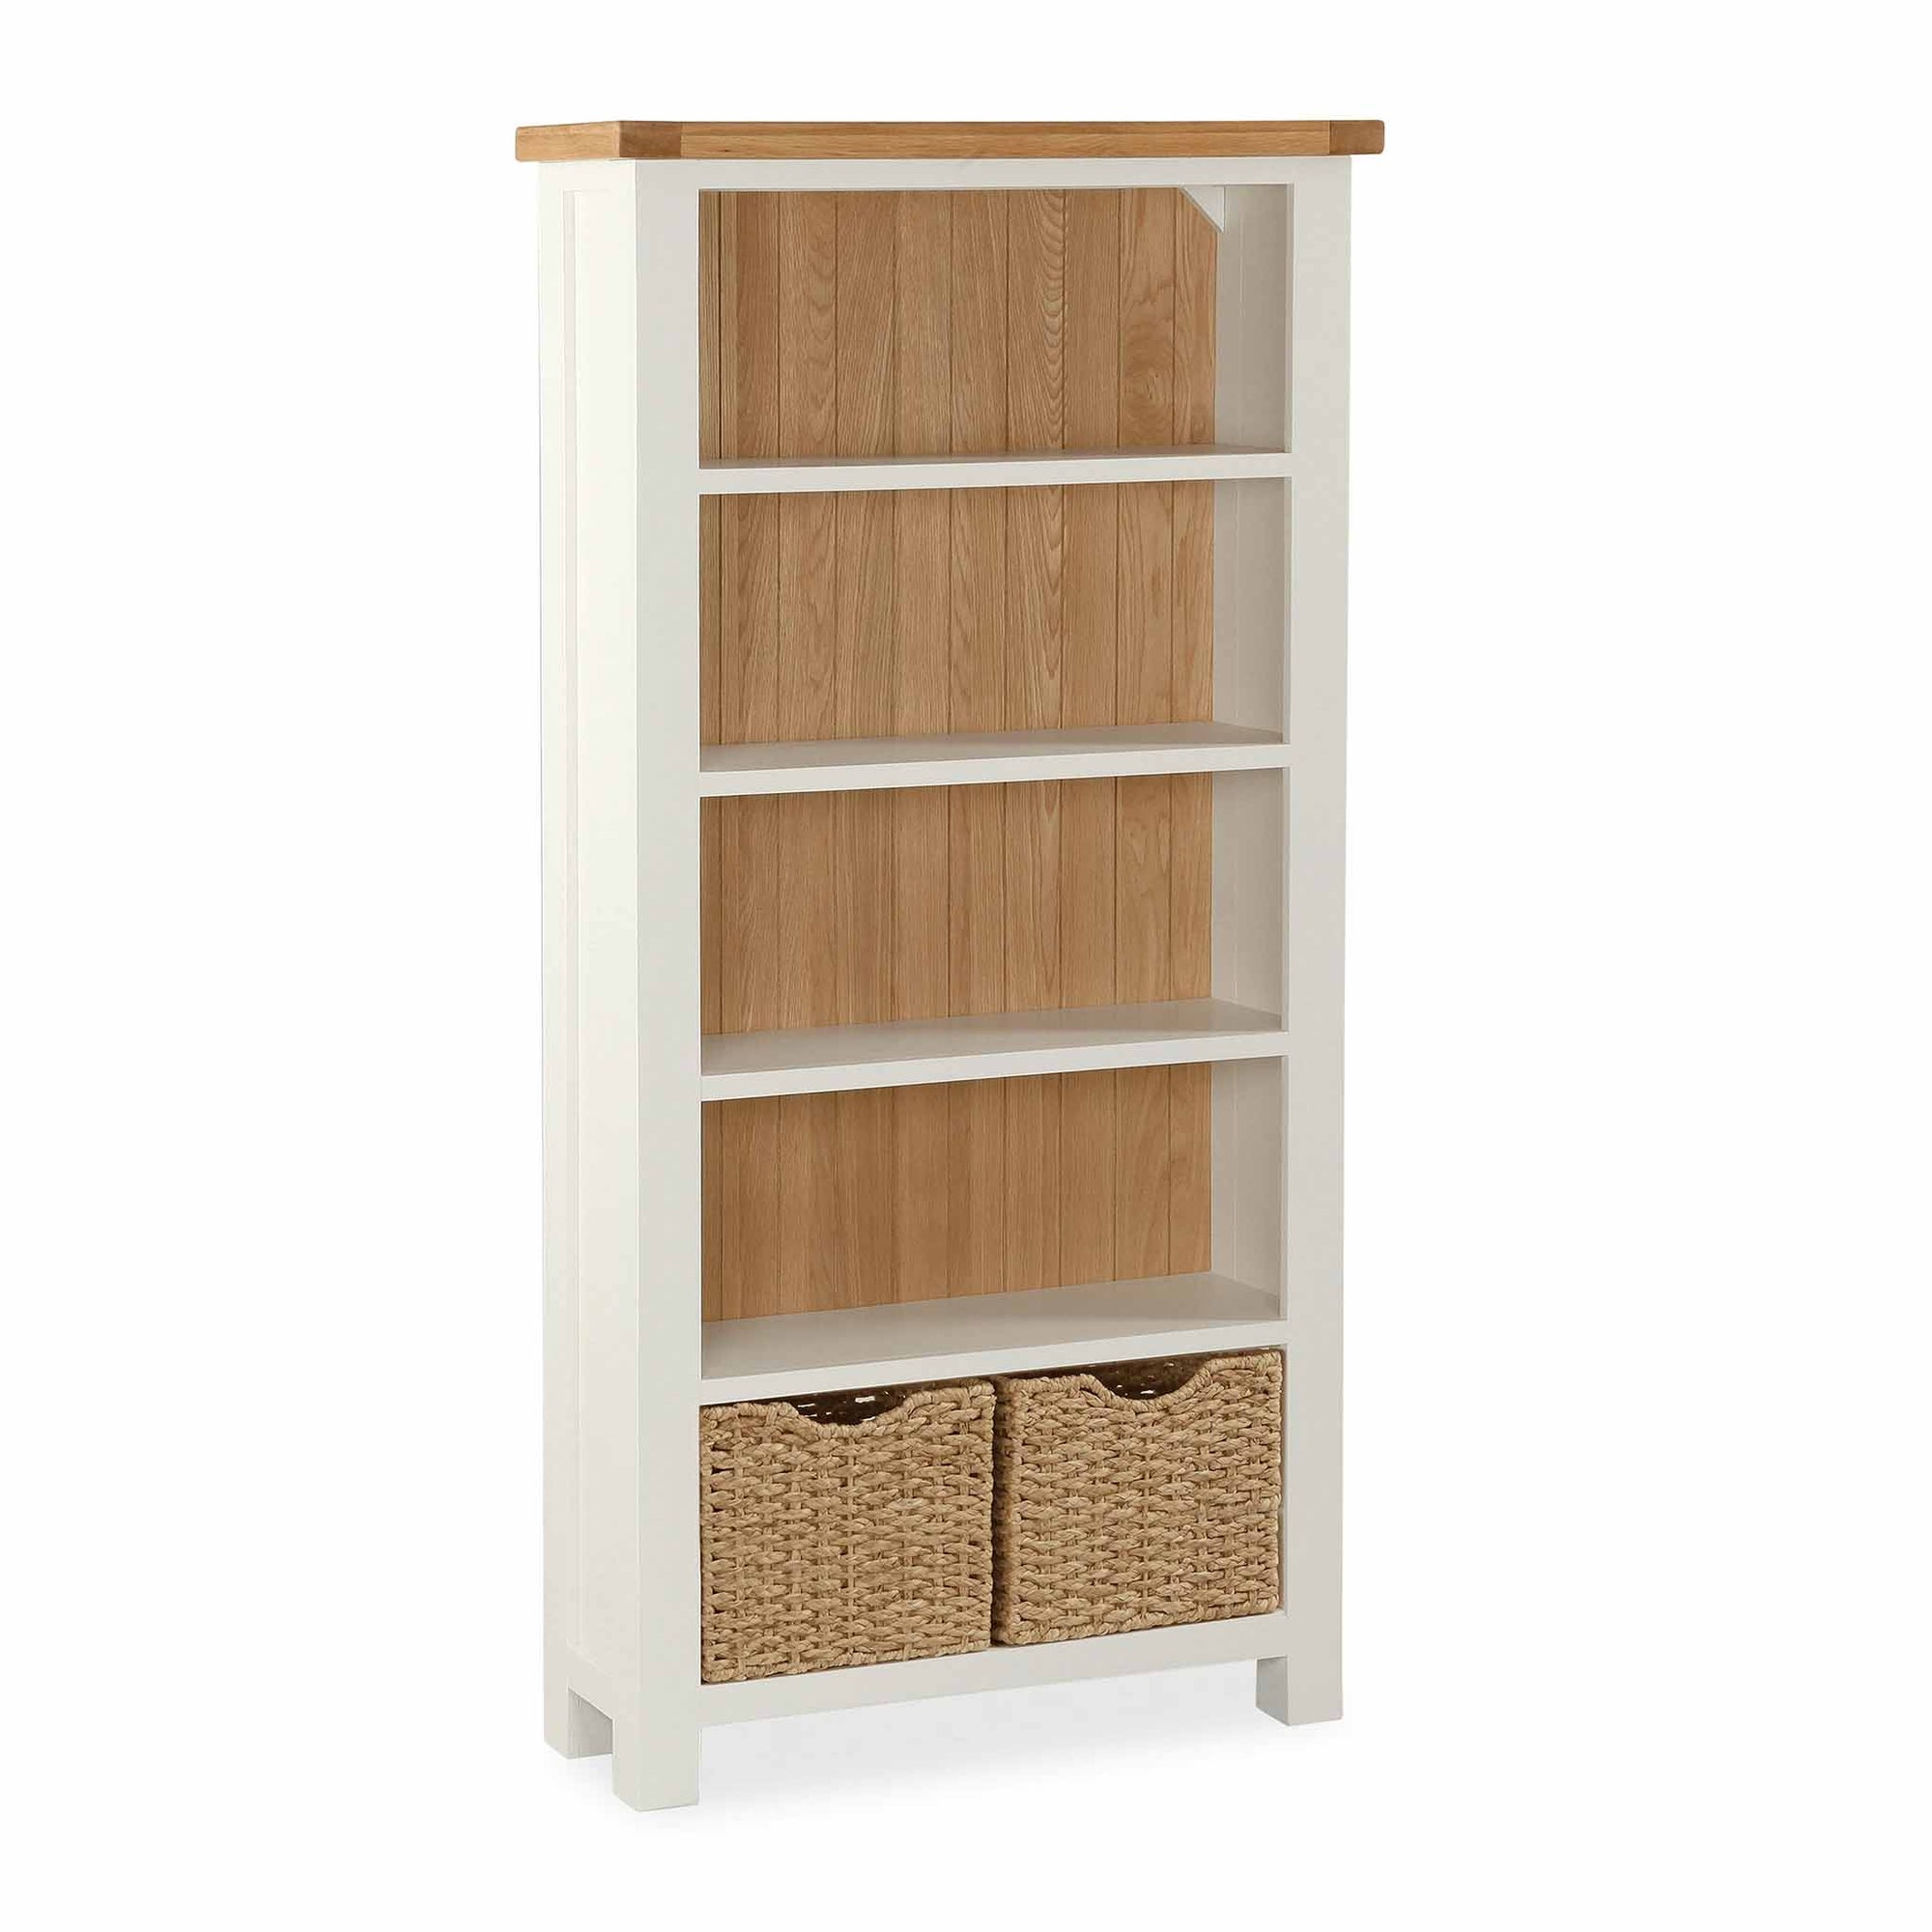 The Daymer Cream Large Oak Top Bookcase with Storage Baskets from Roseland Furniture